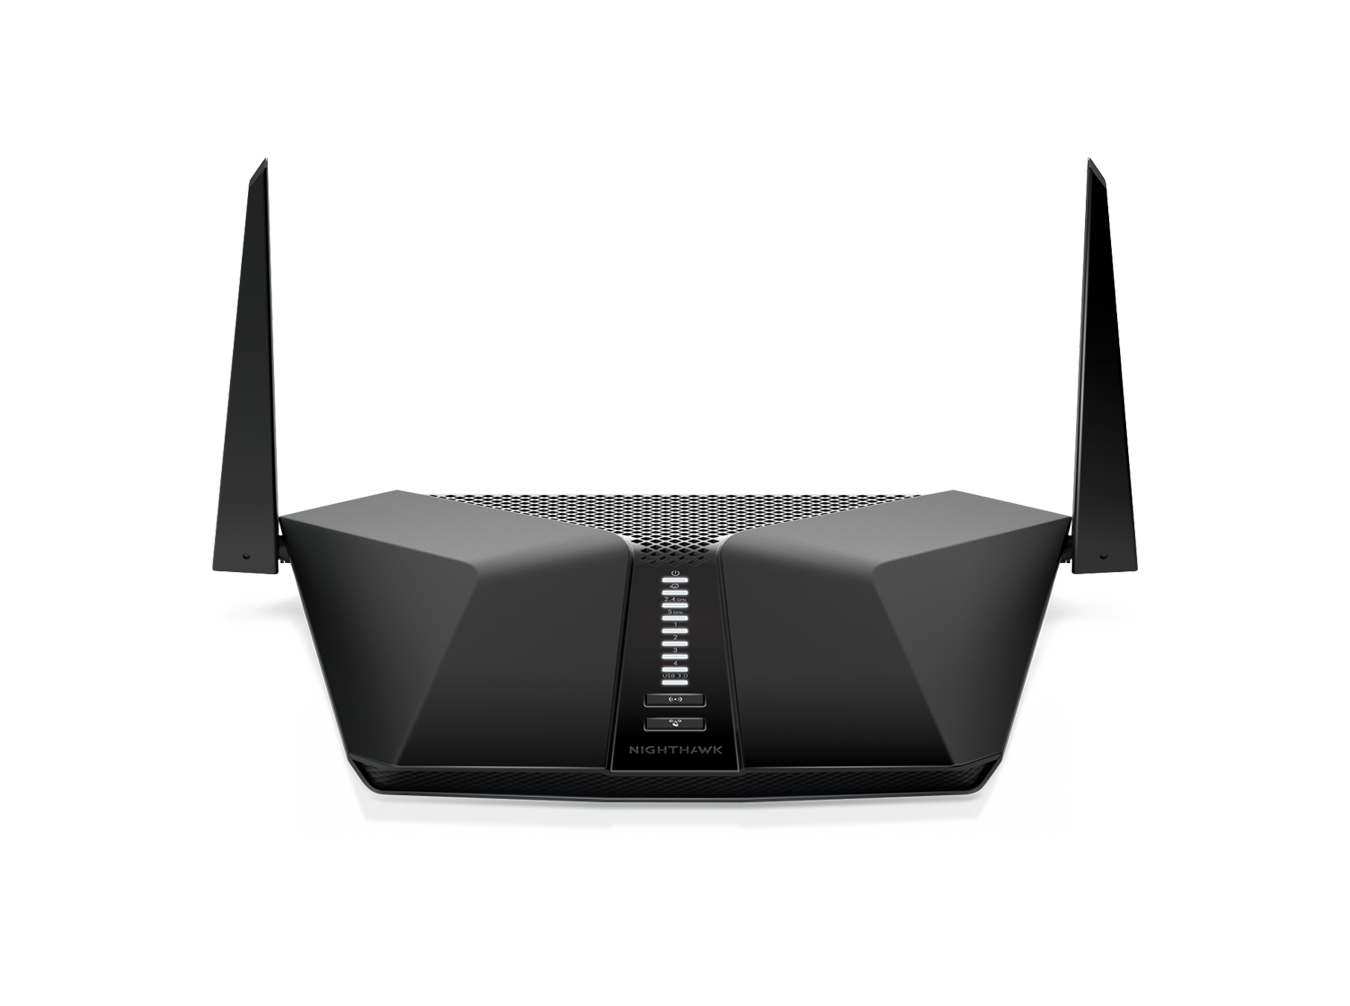 Nighthawk AX4 4-Stream Wi-Fi 6 Router